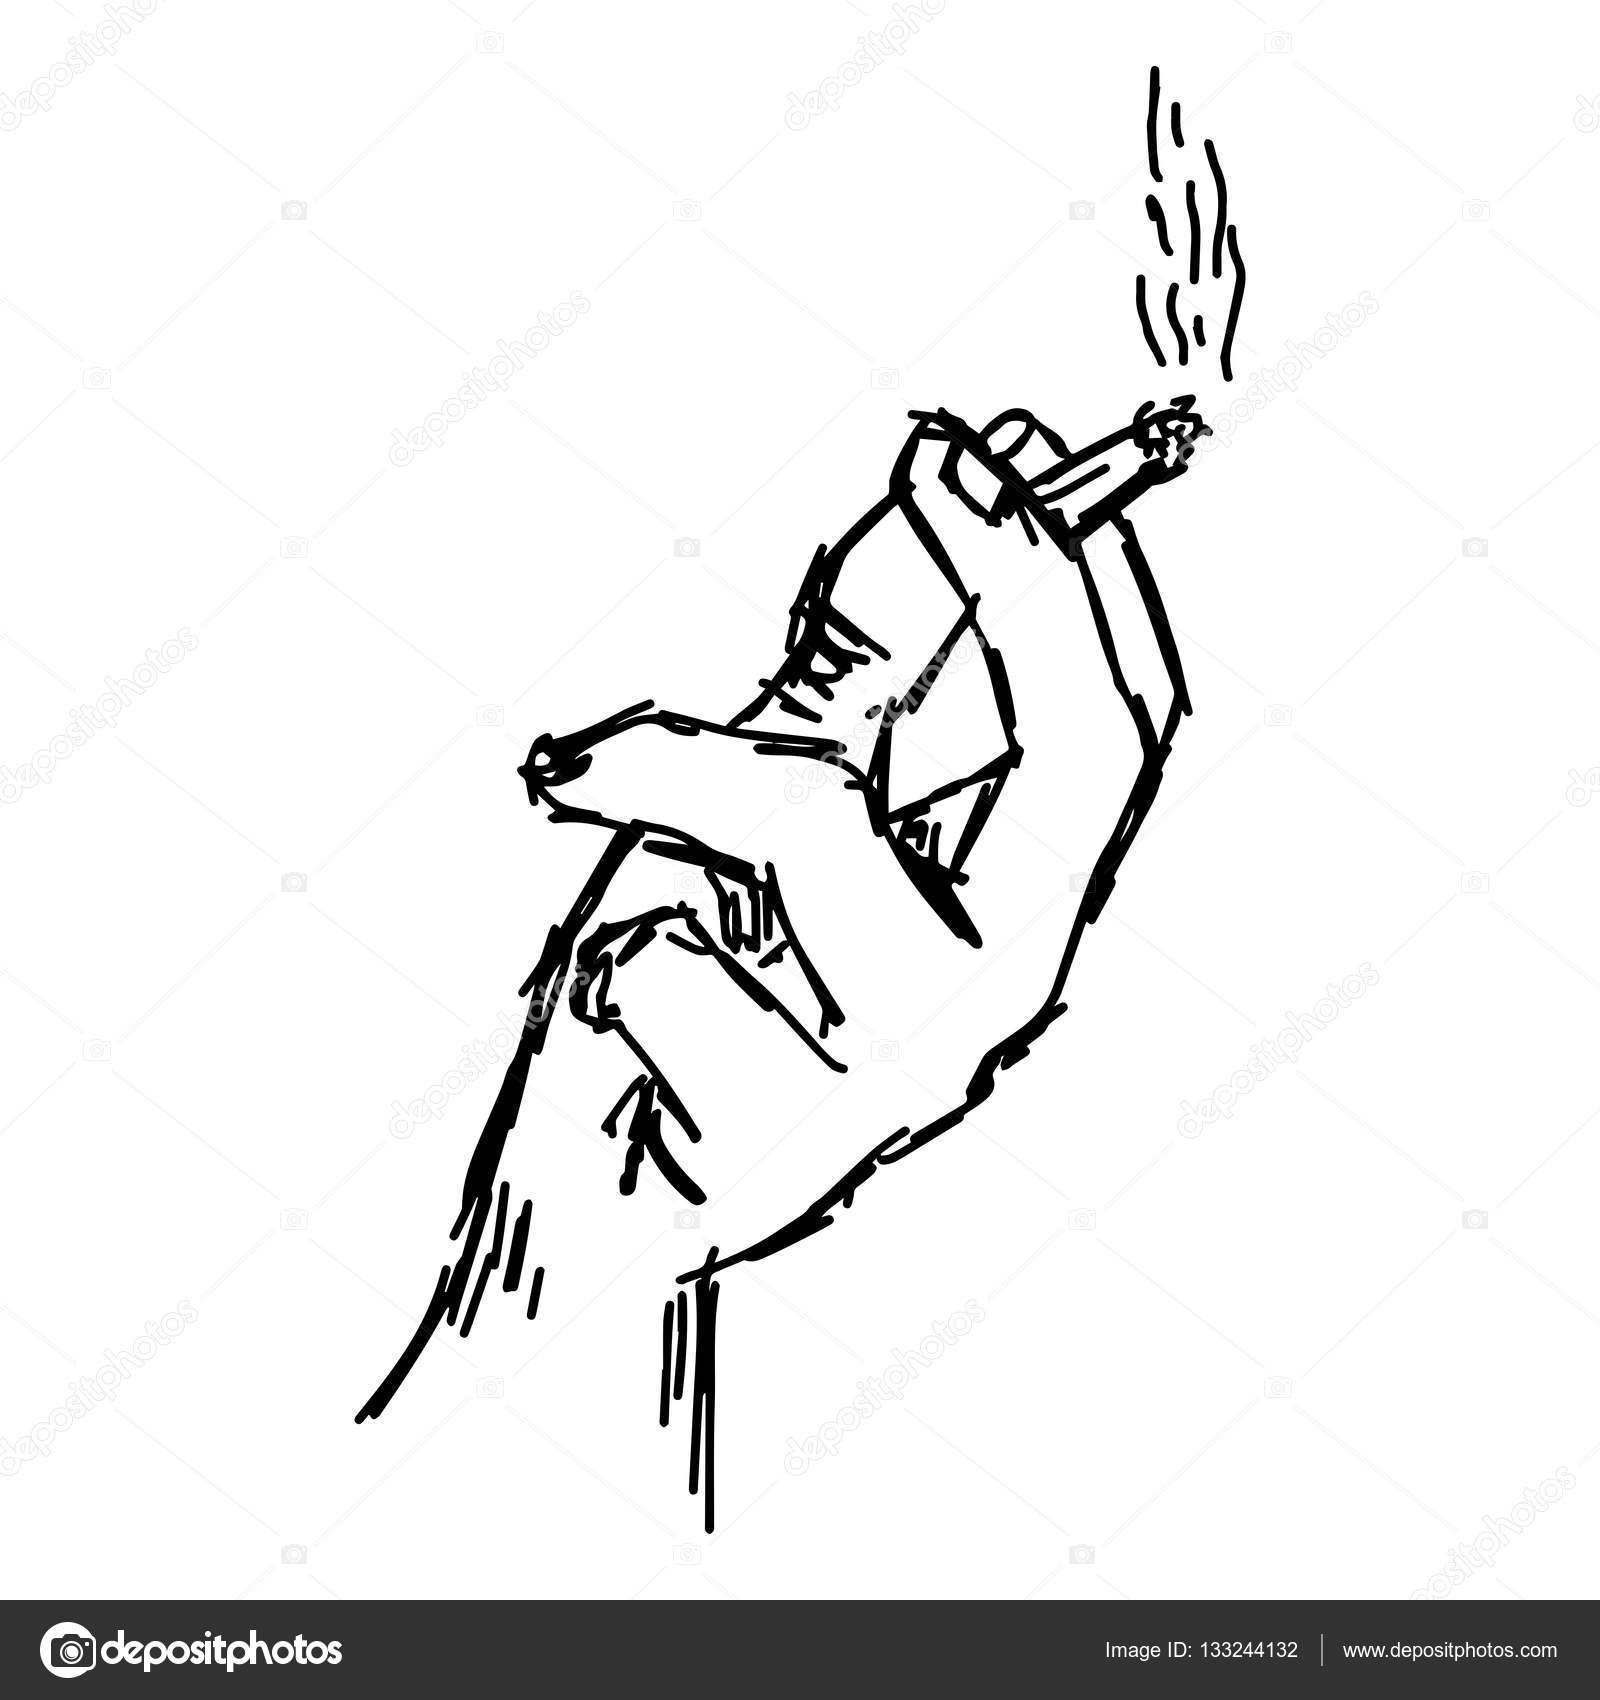 1600x1700 Illustration Vector Hand Drawn Of Hand Holding Cigarette